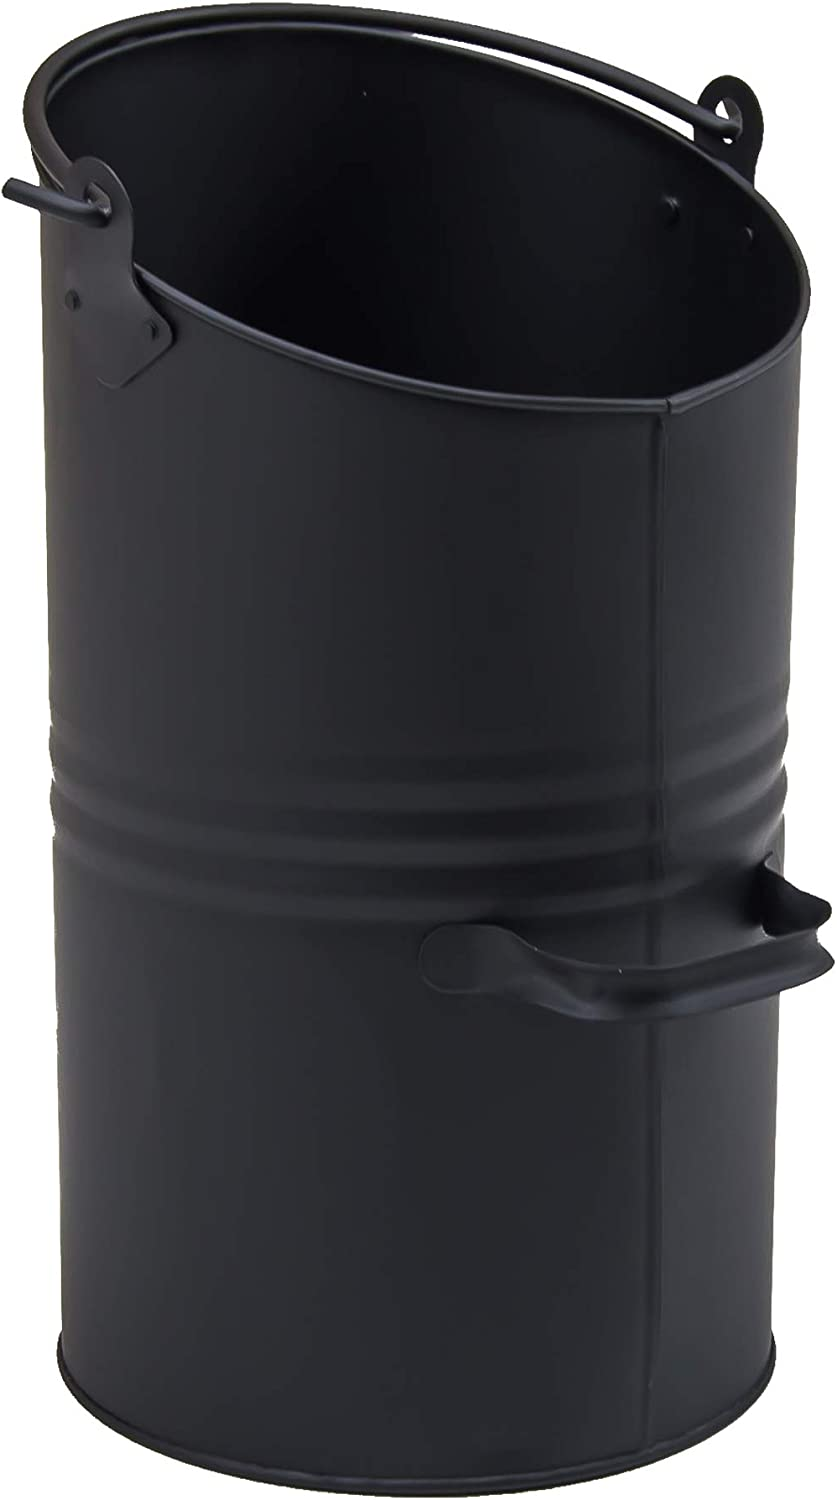 Fire Vida Coal Hod Fire Scuttle Bucket, Metal, Black